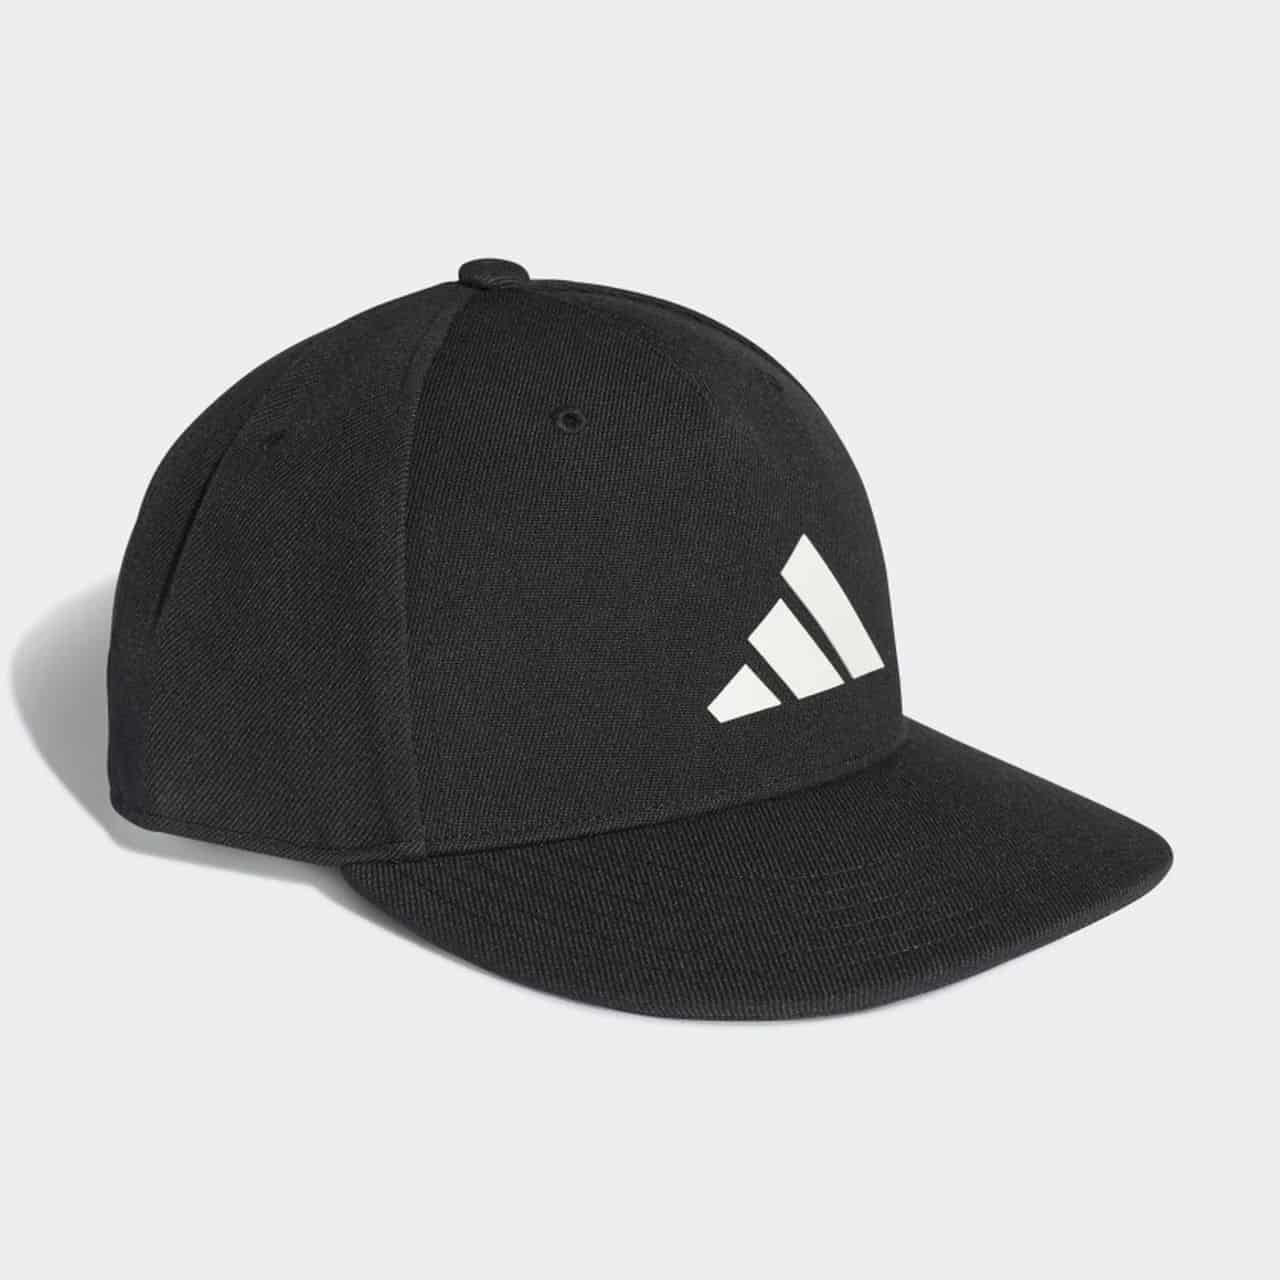 SAPCA ORIGINALA ADIDAS S16 THE PACK CAP - DT8576